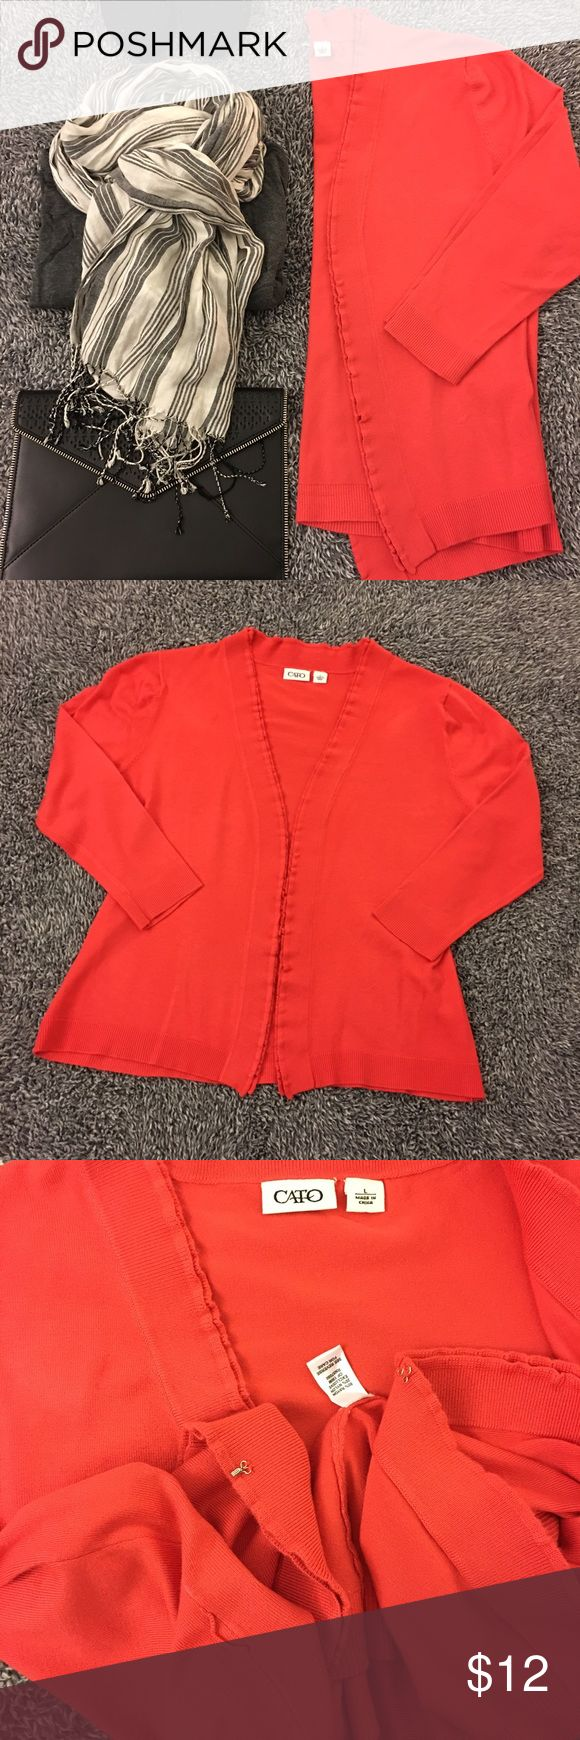 Bold coral cardigan - add a lil' color to ur life! Hardly worn. Great shape & SF. Has belt loops so you can add a belt of your choice. Can be clasped shut in the front. (See pictures 4 details.) Cute layered/ruffle like detail on the front. Prefect 4 layering. Bust measures 21 inches laid flat. Hips are about 20.5. Length is 23. Sleeve length is 19 inches from shoulder seam to cuff hem. Orange/red/coral color - pics are pretty accurate. Questions? Ask! Offers/bundles welcomed! No…